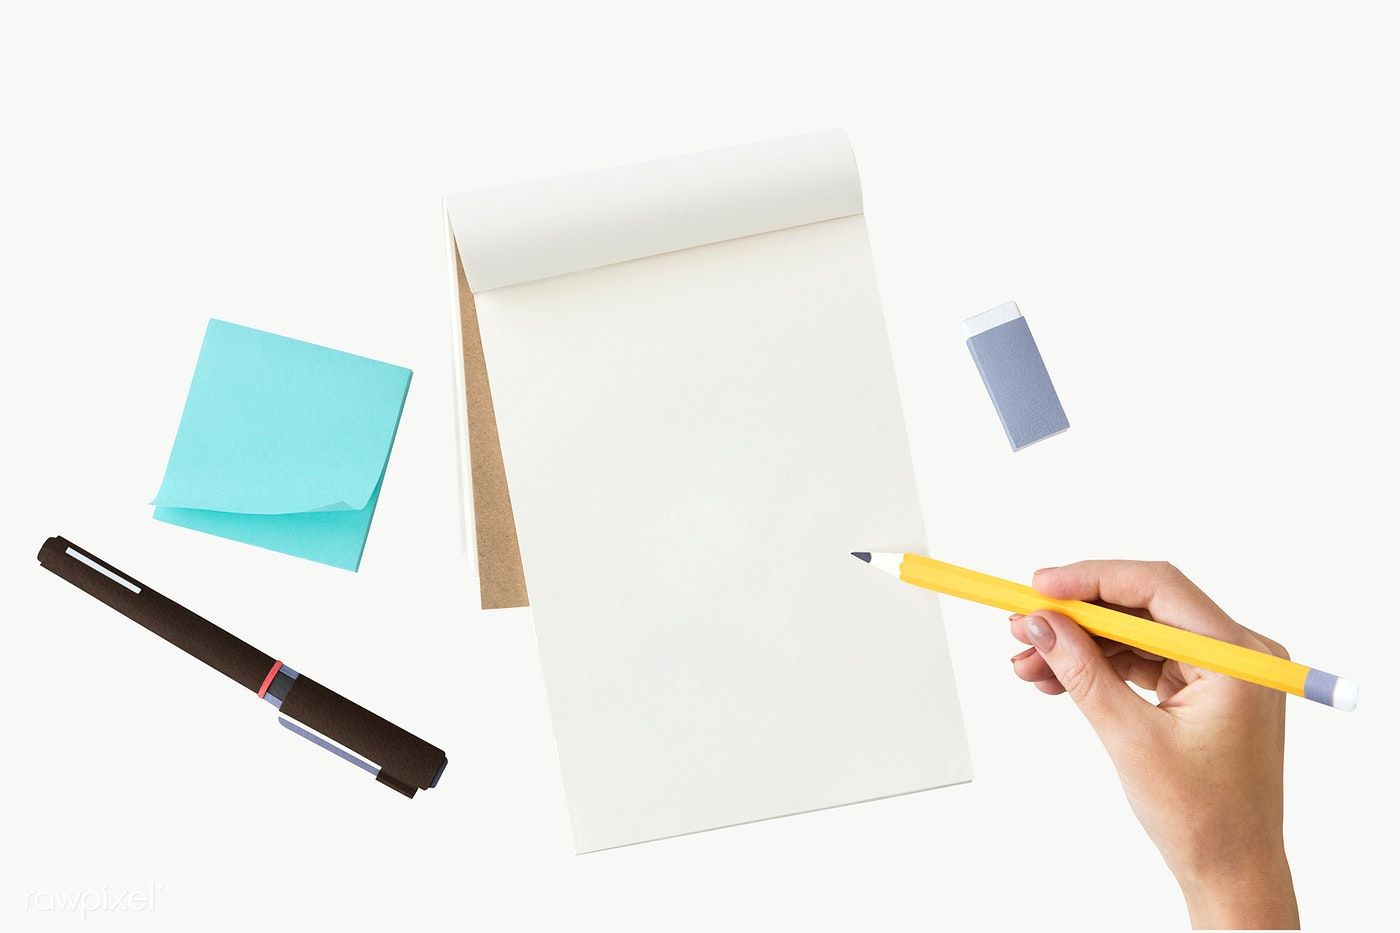 Hand Writing On A Notebook Transparent Png Premium Image By Rawpixel Com Awirwreckkwrar Note Doodles Doodle Designs Pen Sets